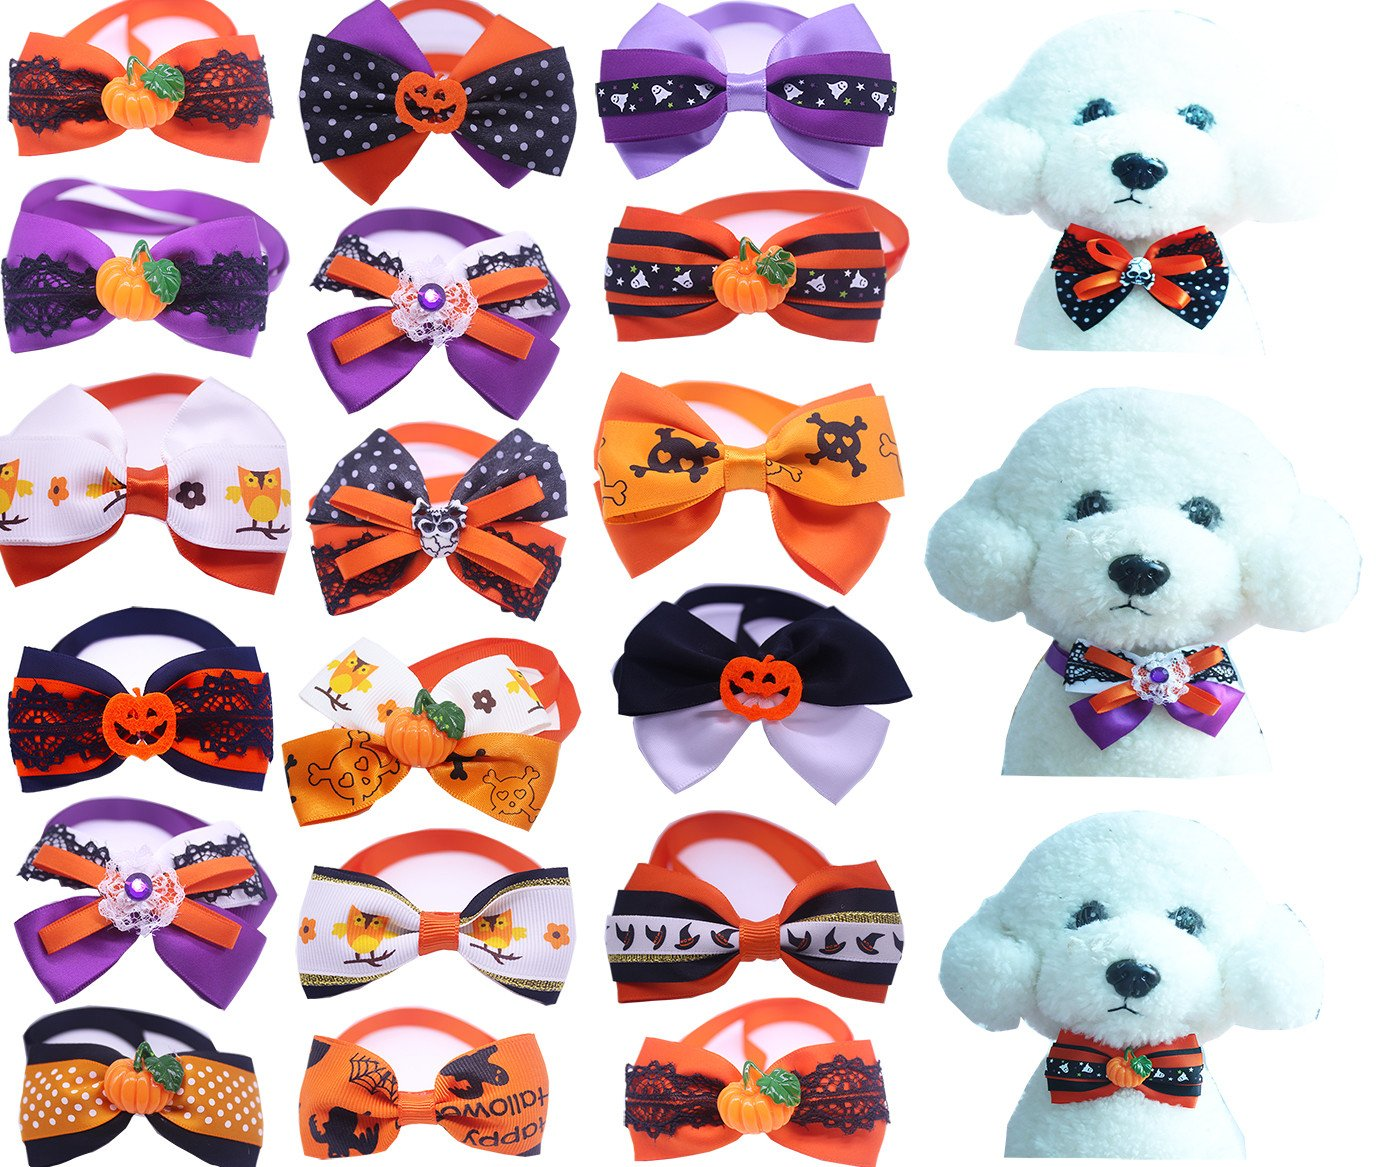 Yagopet 20pcs/pack Small Dog Bow Ties Cat Dog Bowties Collar for Halloween Festival Dog Ties Dog Grooming Accessories